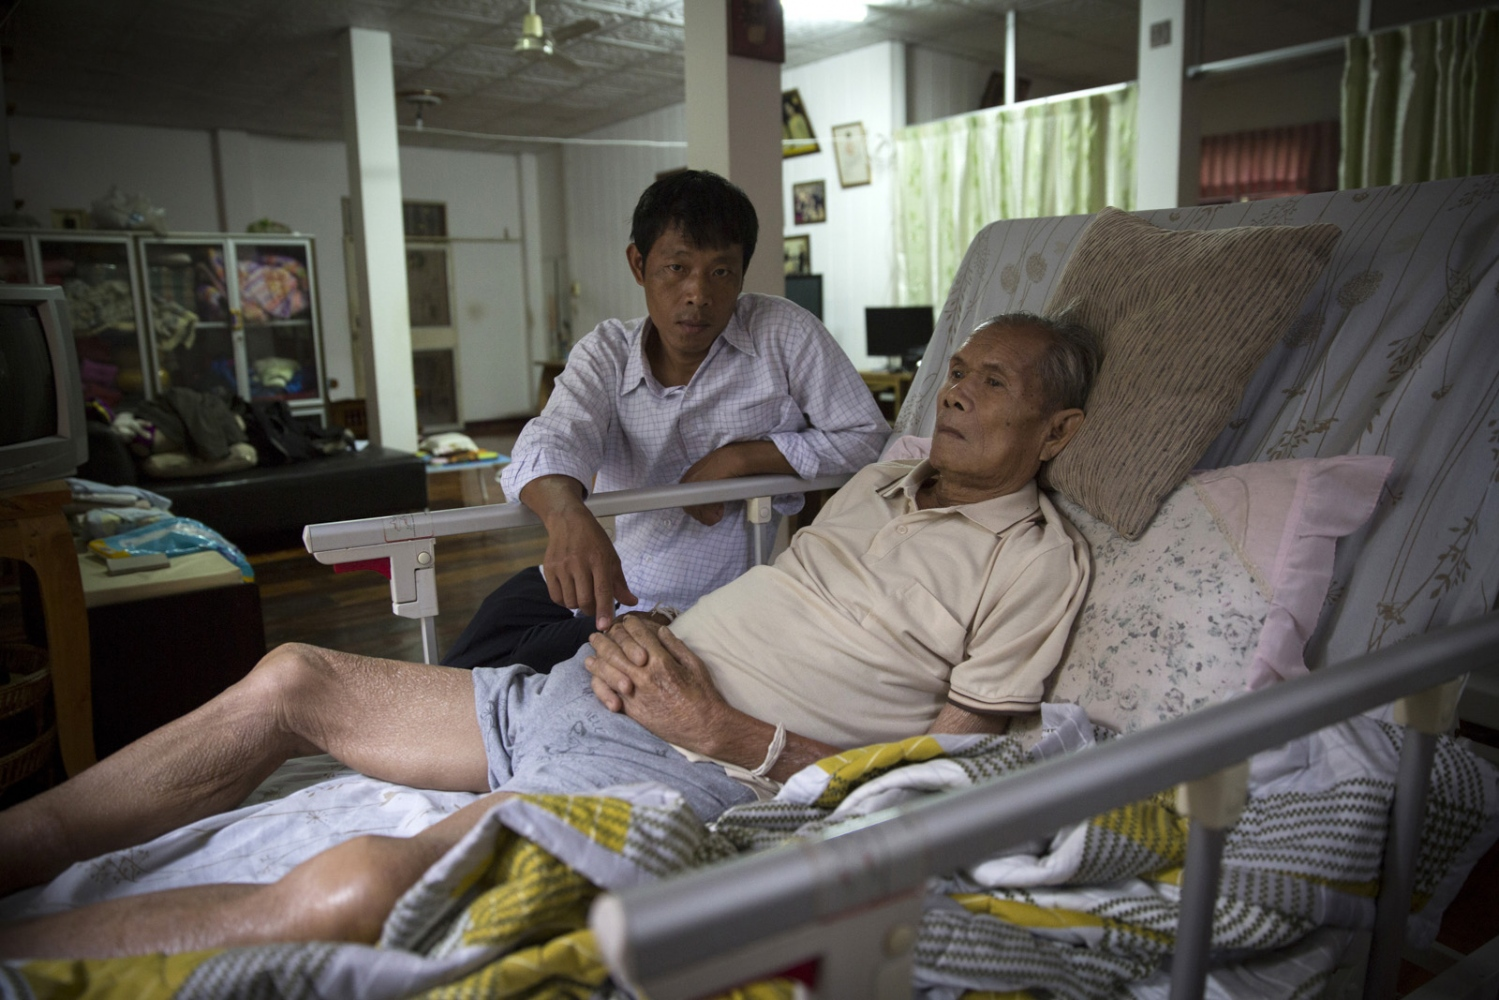 Melioidosis victim Garn Wongsuvan, 82, rests in his home after being diagnosed several months ago. Ubon Ratachathani, Thailand